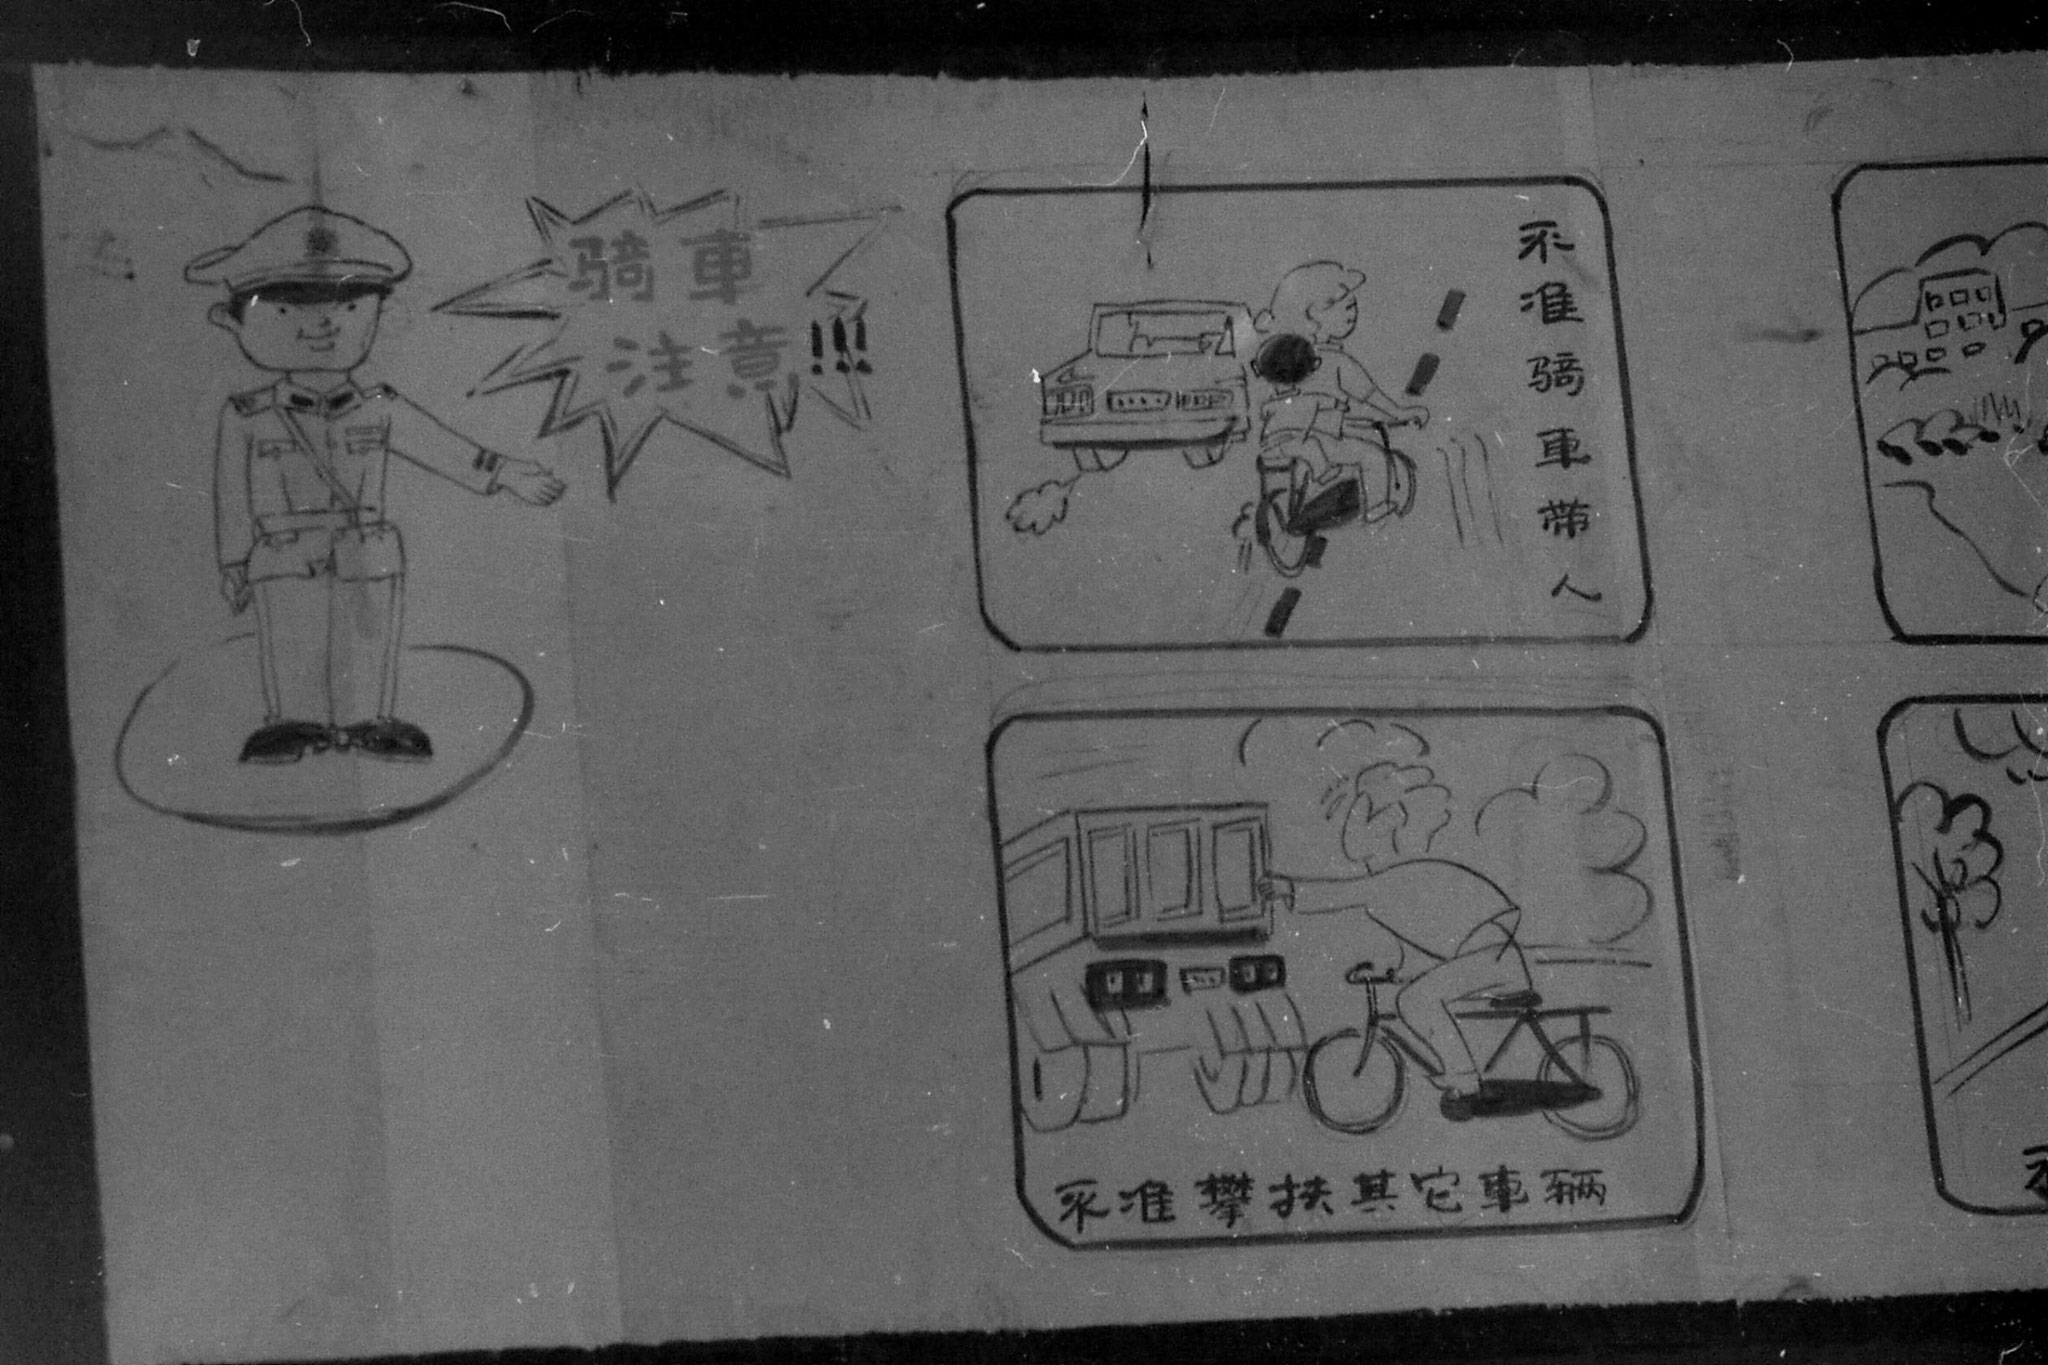 21/11/1988: 16: Road Safety Signs near Friendship Hotel